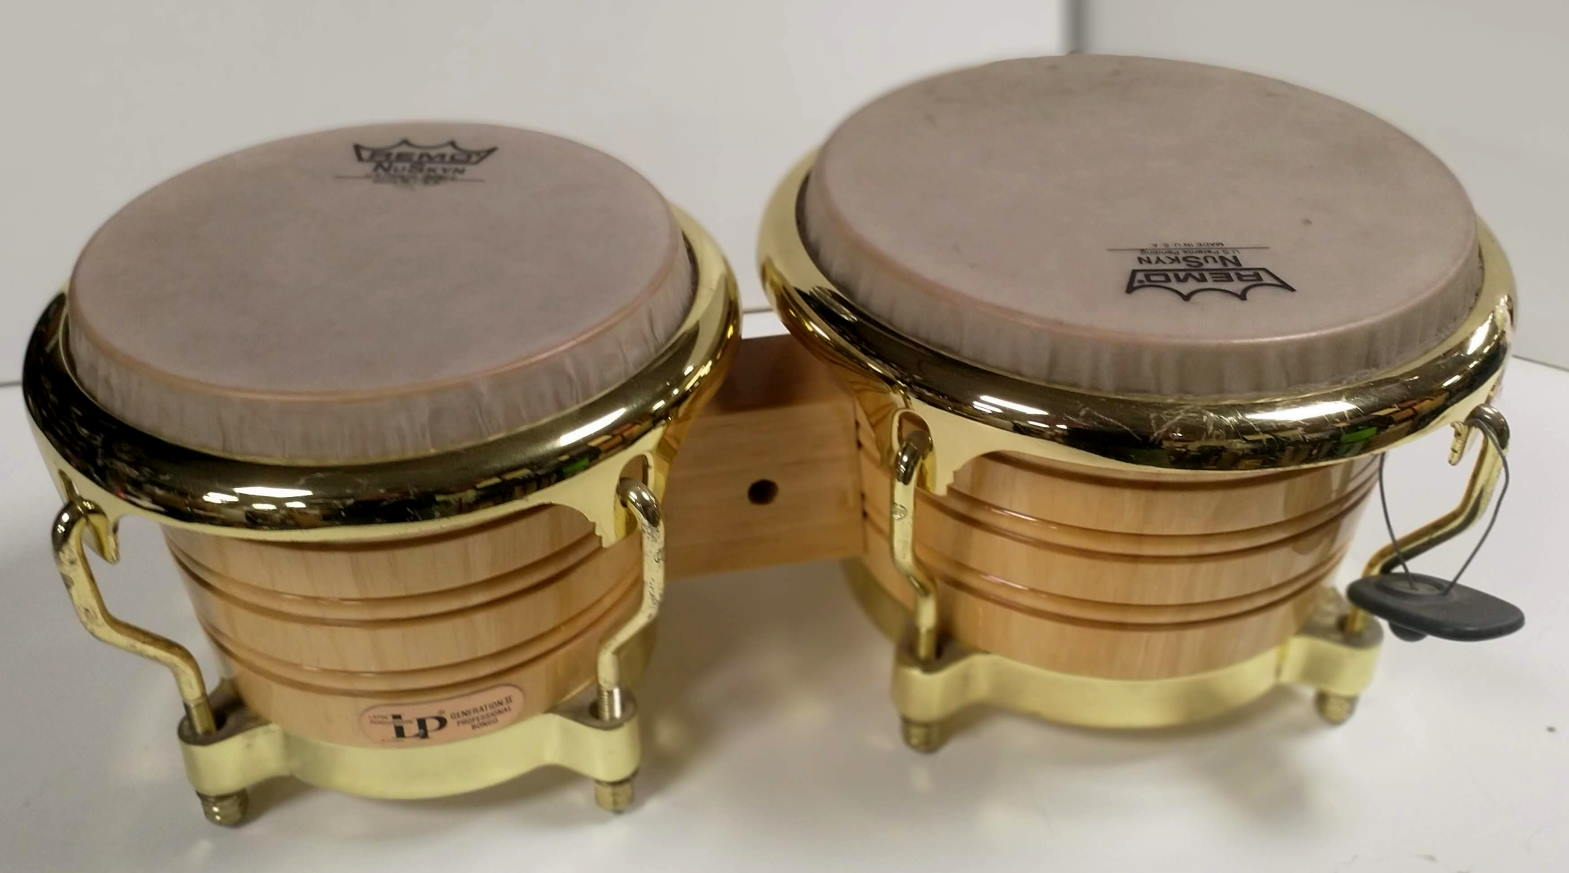 Latin Percussion LP201AX-2AW Generation II Bongos Remo skin